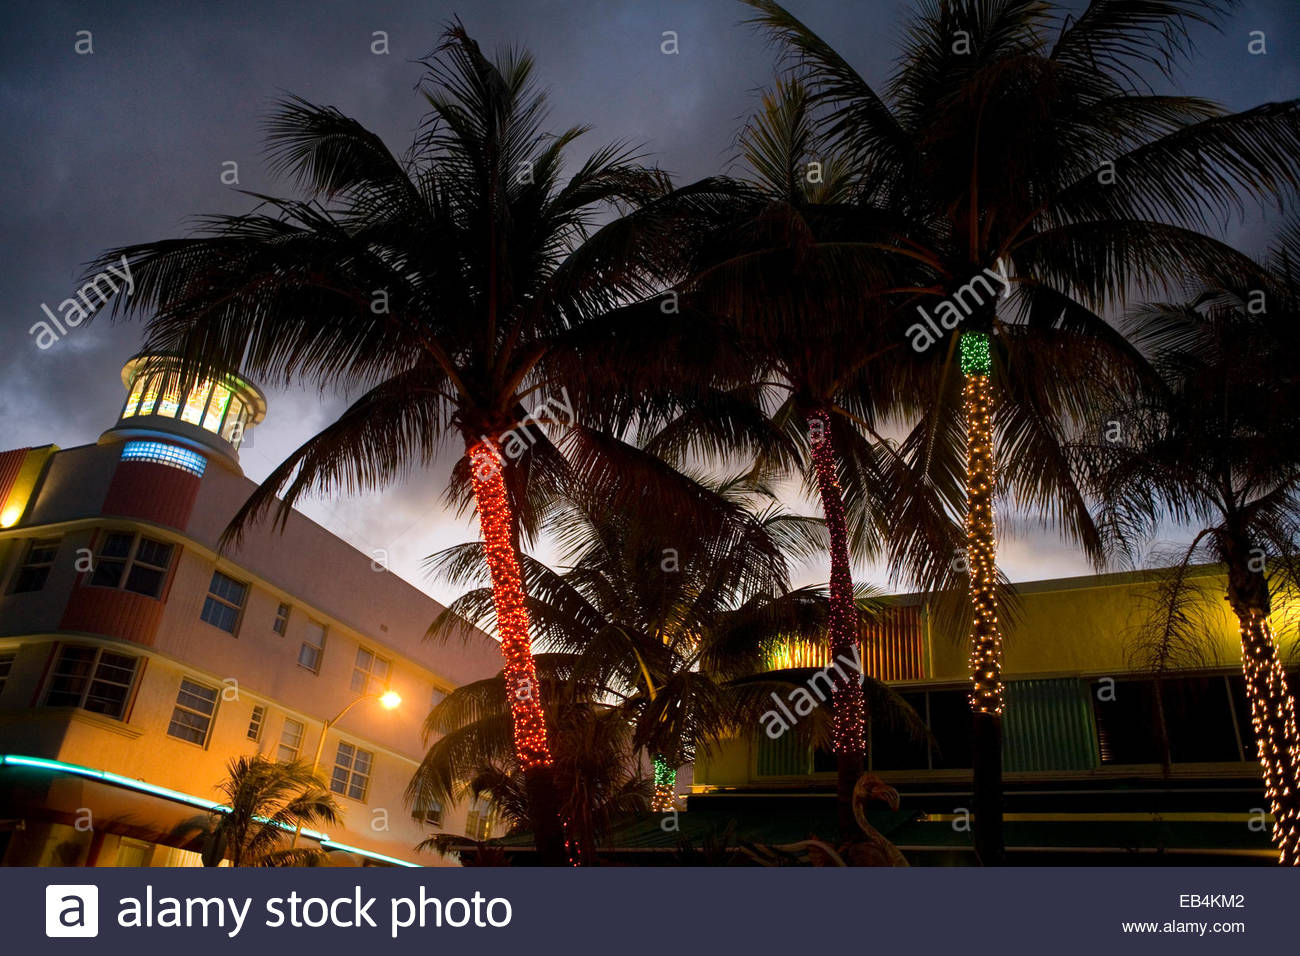 Neon lights adorning businesses and restaurants along Ocean Drive in the historic art deco South Beach. - Stock Image